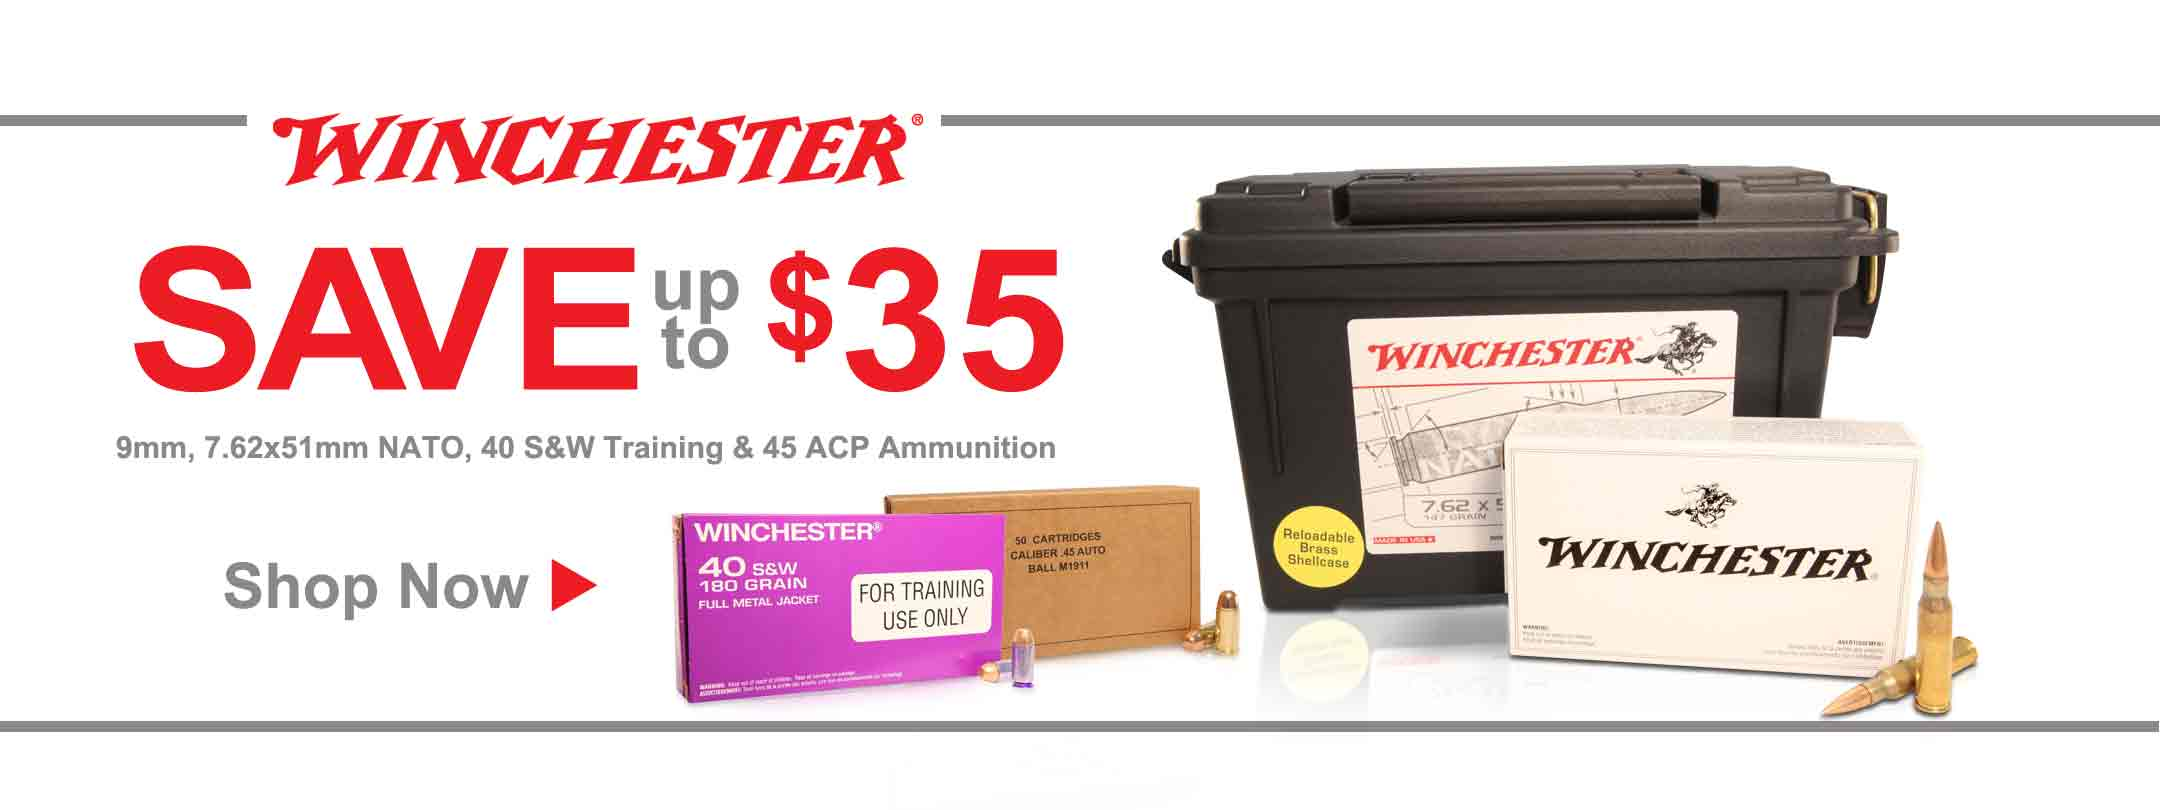 Save up to $35 on Select Winchester Ammo